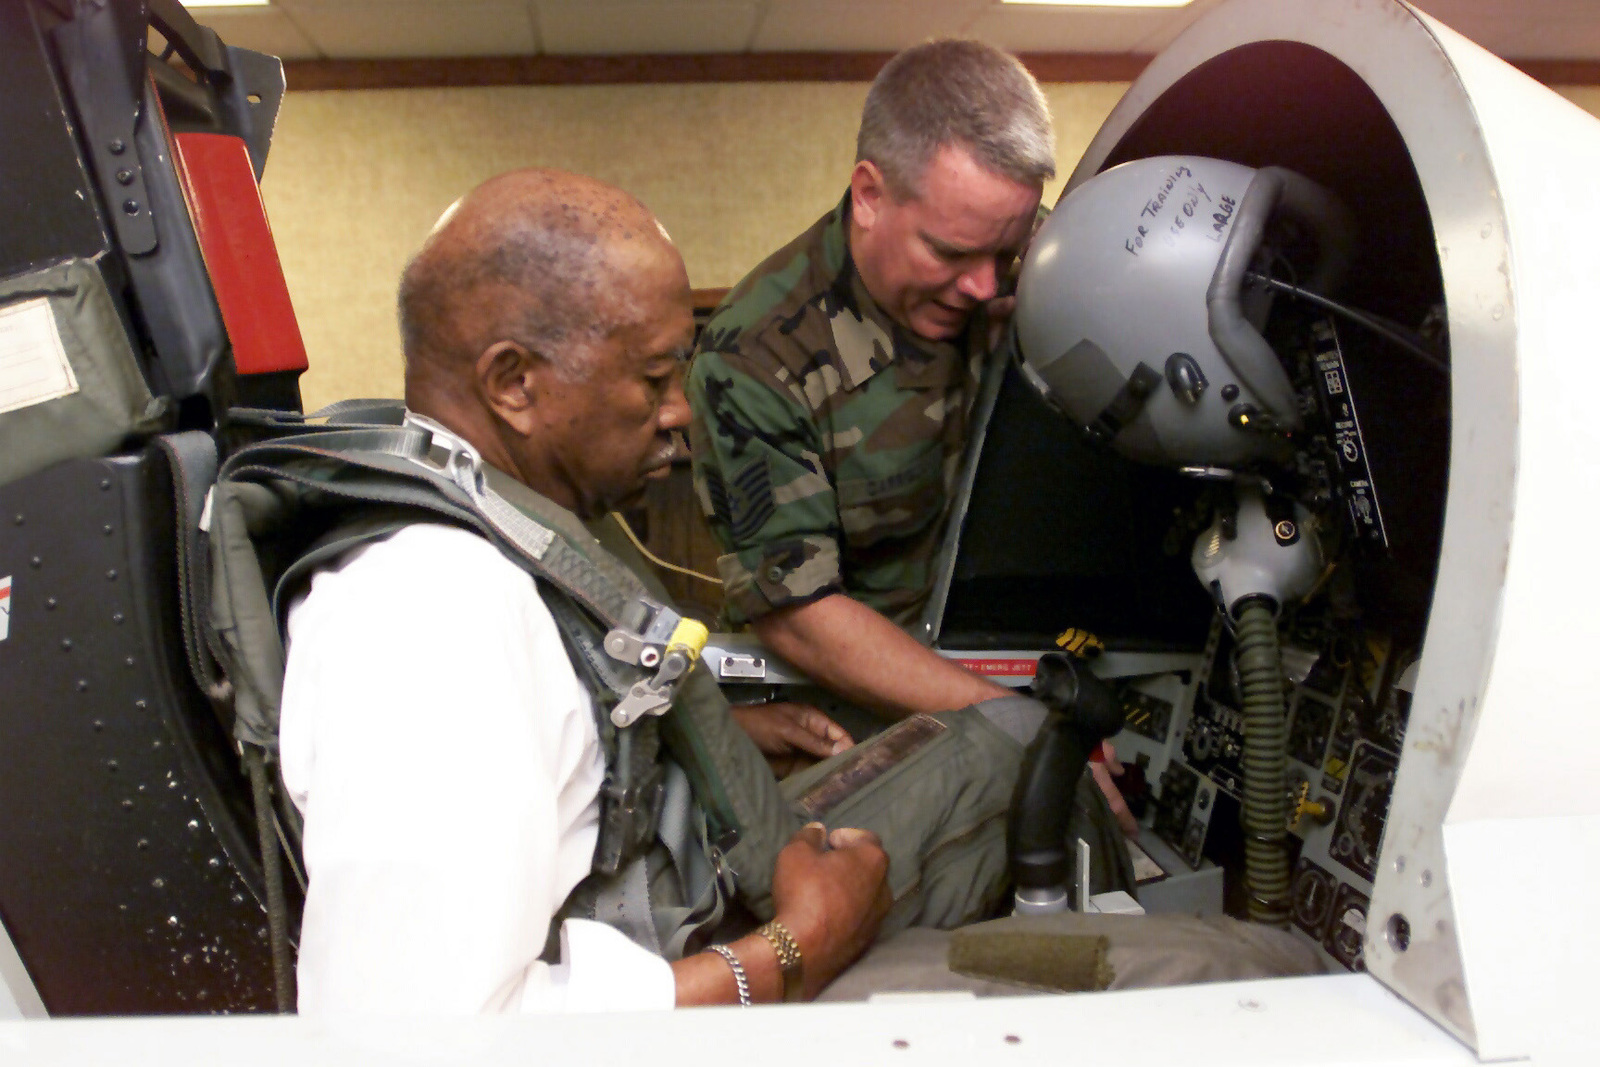 Technical Sergeant Patrick Carroll, right, 1ST Fighter Wing SERE (Survival, Evasion, Resistance, and Escape) SPECIALIST, demonstrates how to adjust the rudder pedals in the F-15 egress simulator to Lieutenant Colonel (ret) Francis Horne prior to his F-15 flight at Langley Air Force Base, Virginia. Horne is one of the original Tuskegee AIRMAN